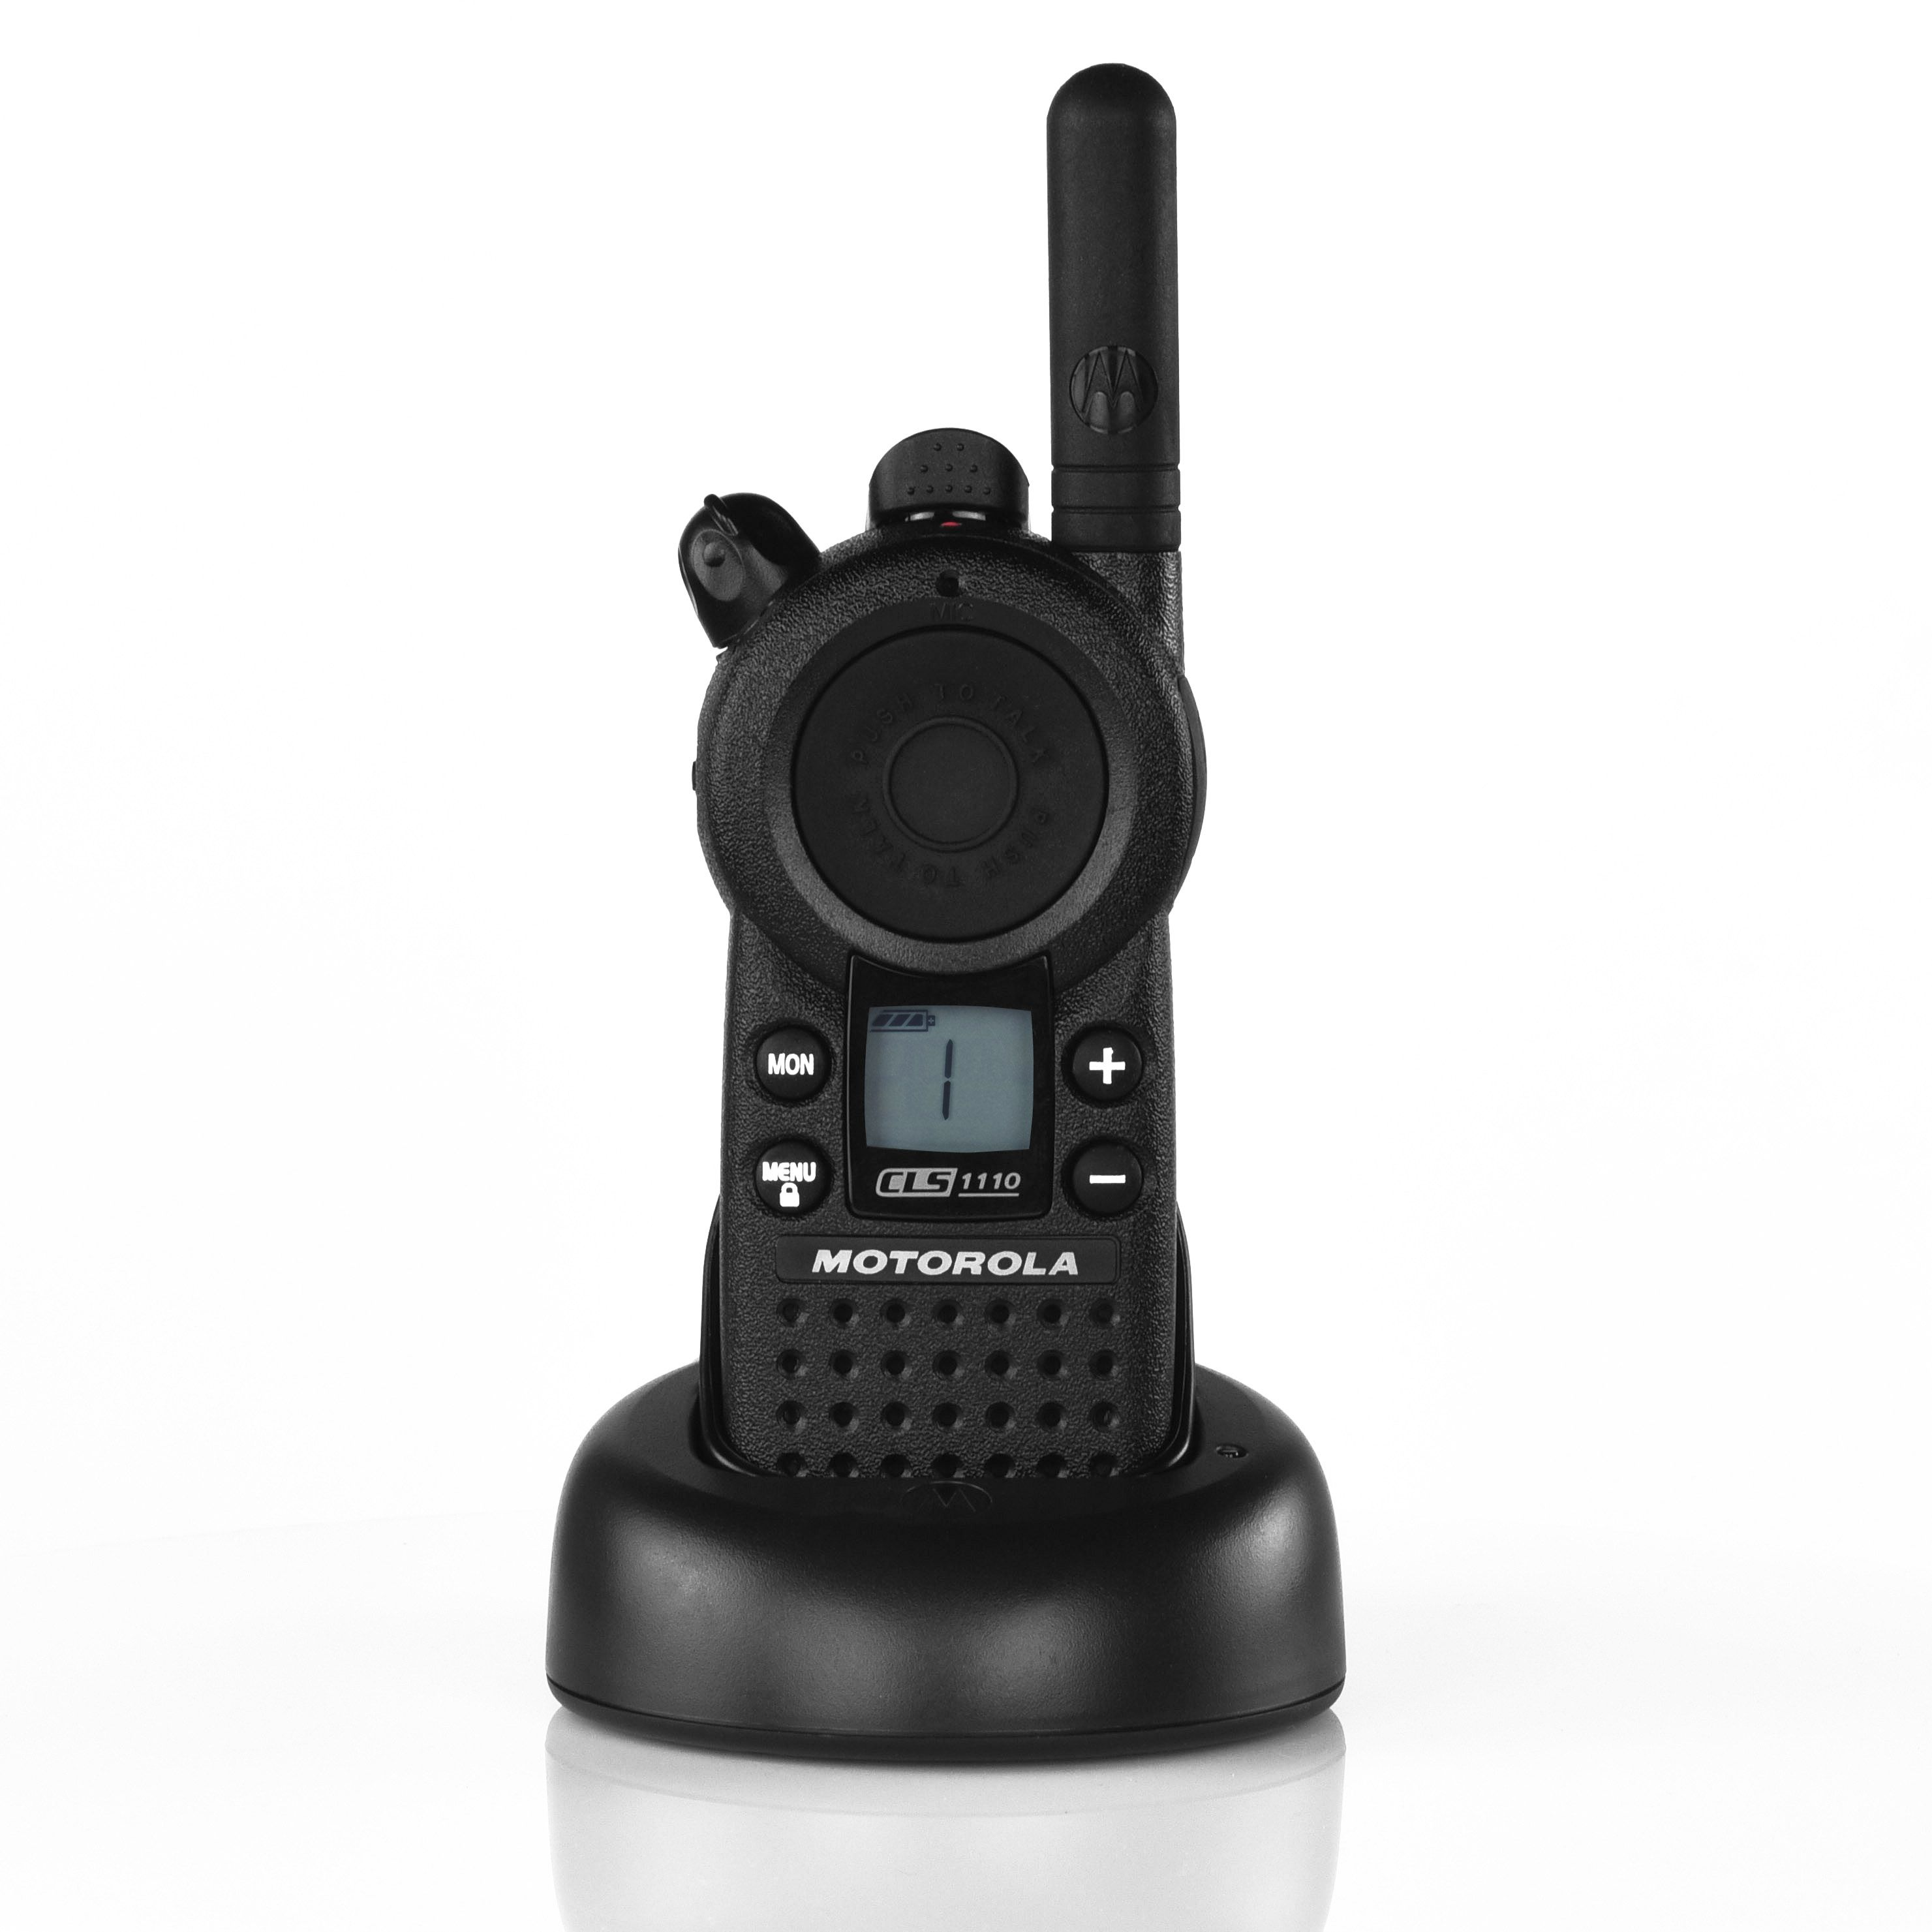 motorola handheld radio. delivering remarkable functionality at the push of a button, cls 1110tm on-site two-way radio is designed for fast pace business. motorola handheld